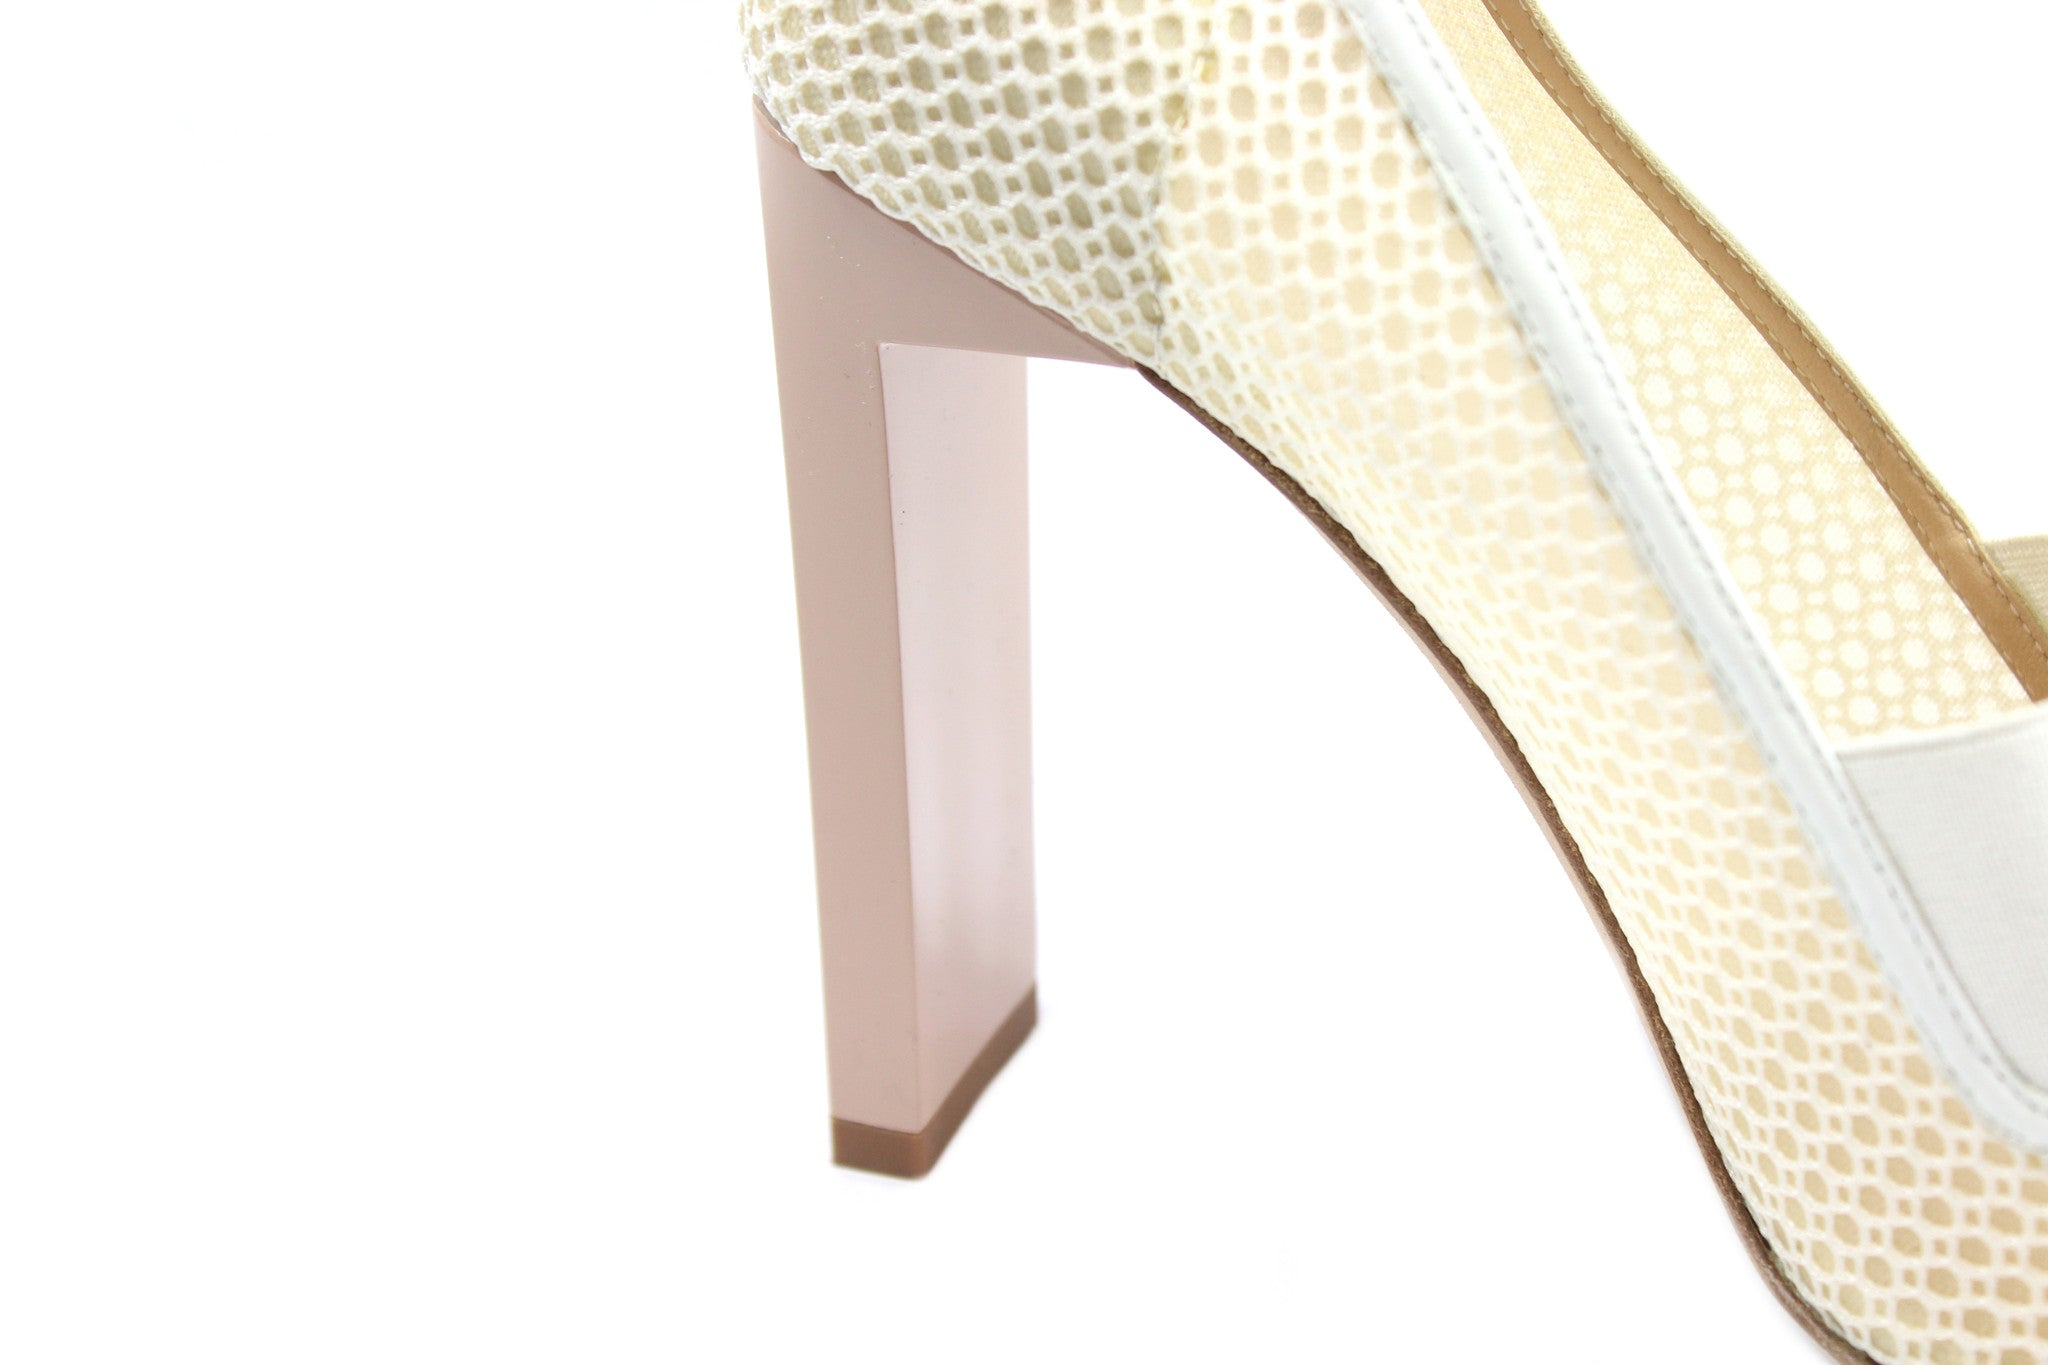 Reed Krakoff Mesh Atlas Nude and White Pumps (Size 38.5) - Encore Consignment - 9